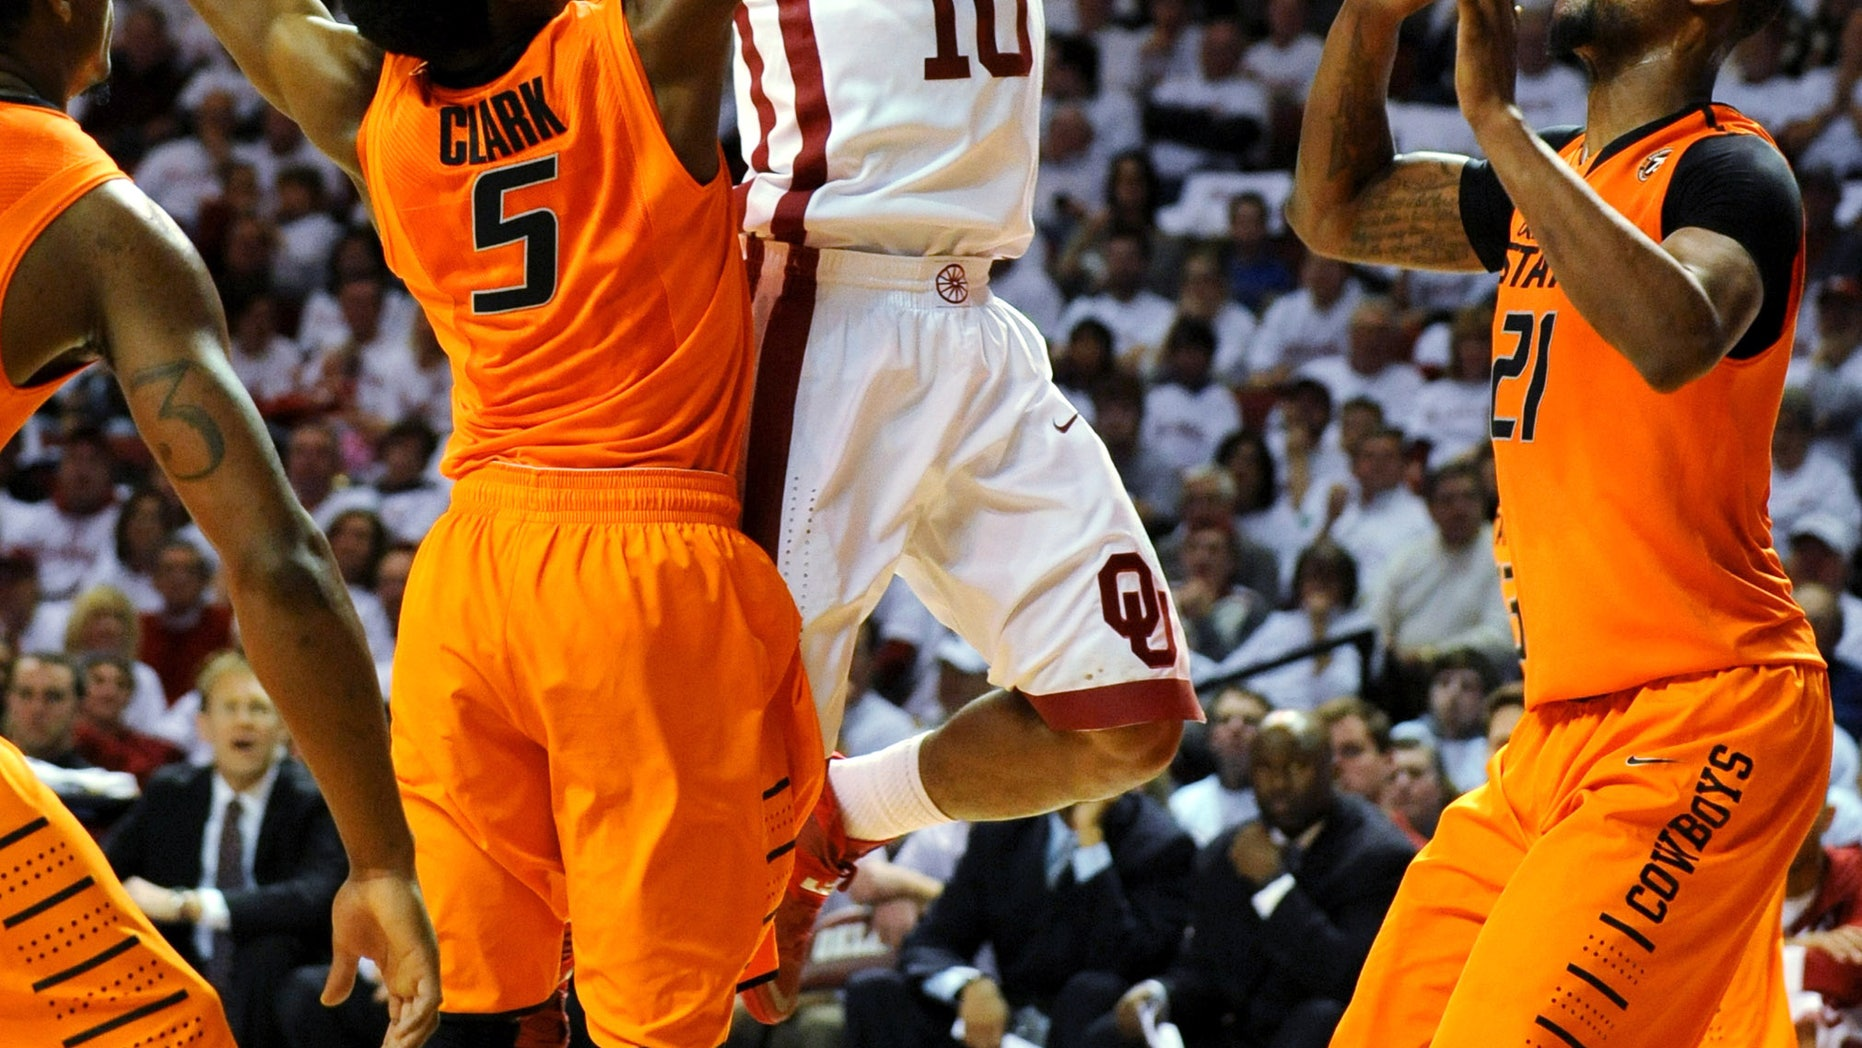 Oklahoma guard Jordan Woodard, center, takes a shot over Oklahoma State guard Stevie Clark, left, and Oklahoma State forward Kamari Murphy, right, during the second half of an NCAA college basketball game in Norman, Okla., Monday, Jan. 27, 2014. Woodard scored 18 points in the 88-76 win over rival Oklahoma State. (AP Photo/Brody Schmidt)